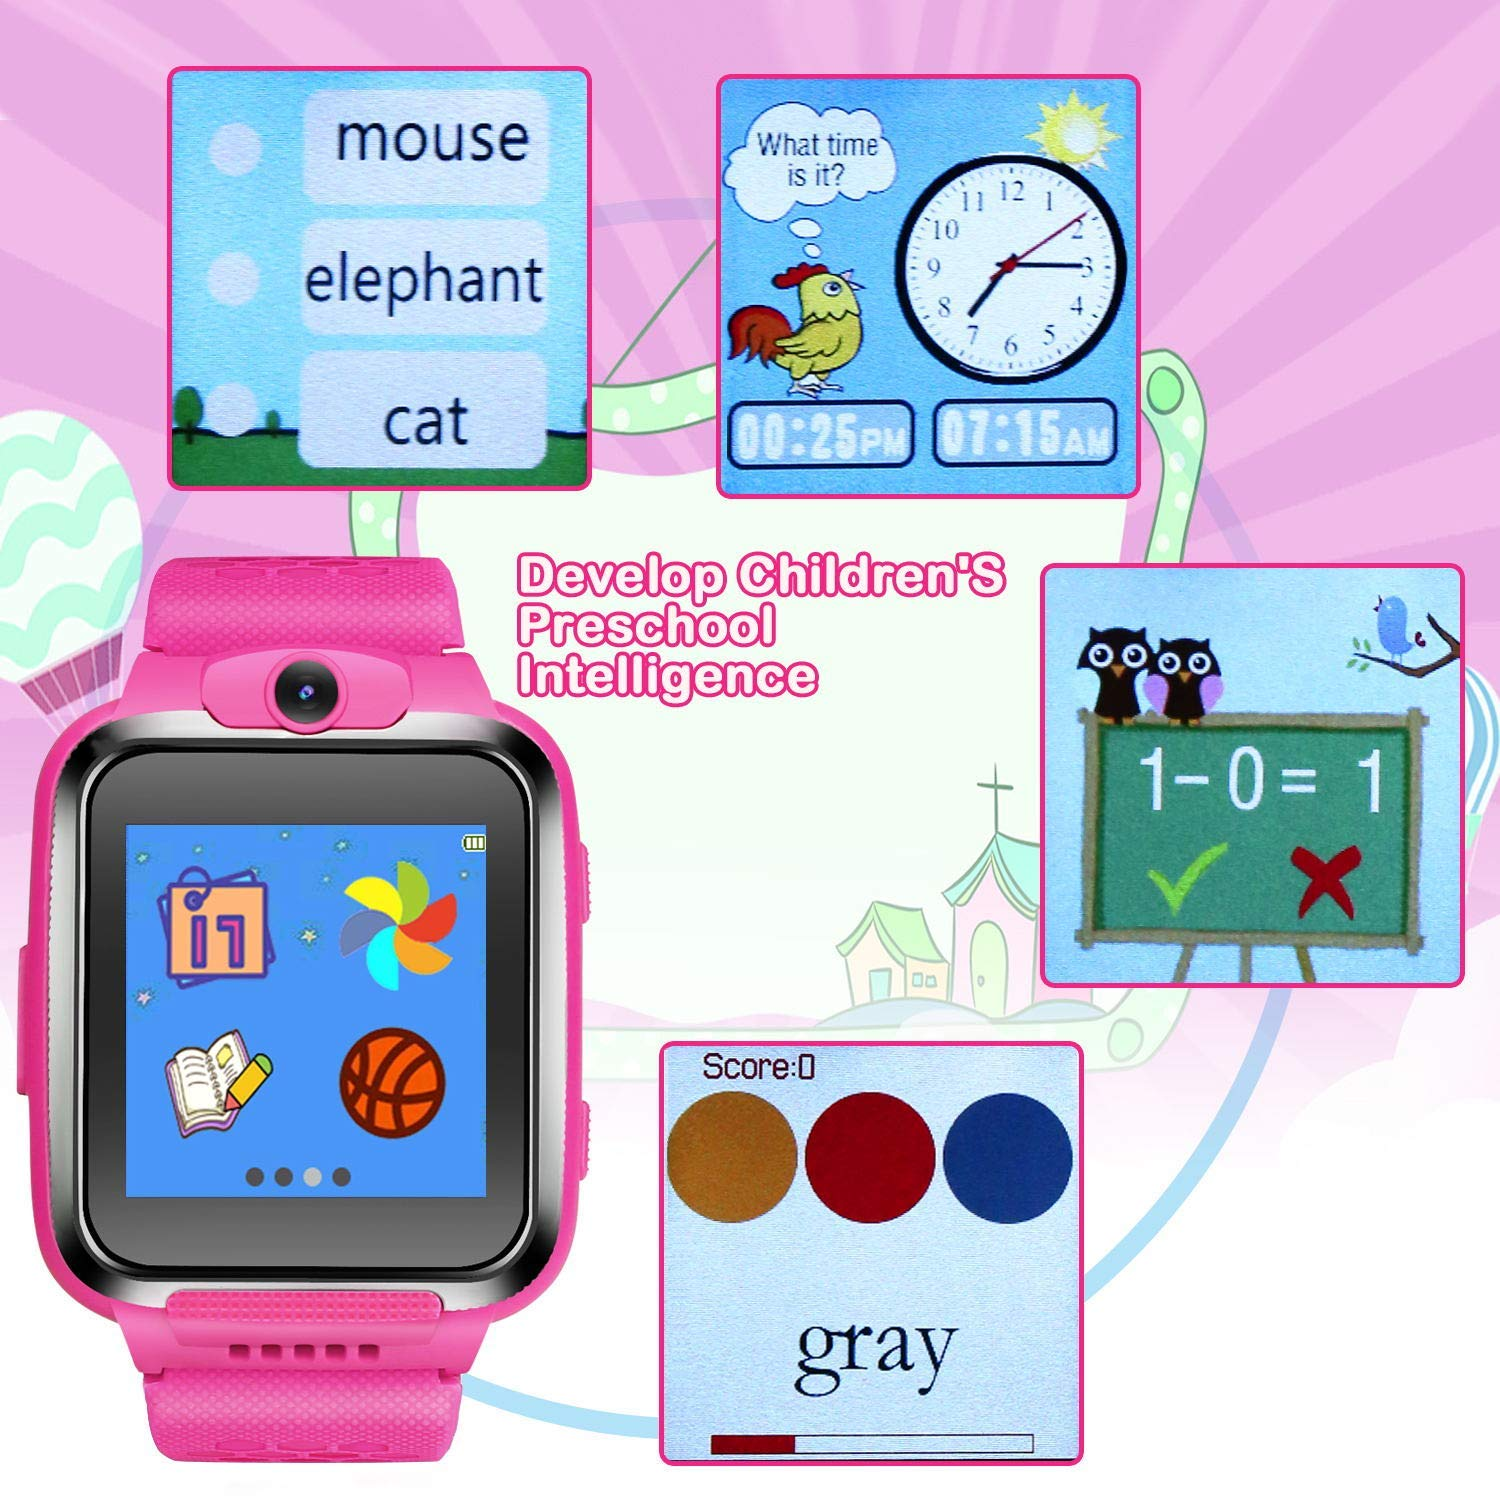 ZOPPRI Kids Game smartwatch Touch Screen Kinds of Games Kids Watch Theme Calendar Stopwatch Alarm Clock Photo Timer Multi-Function Watch Toy Gift for 3-12 Years Old boy Girl Birthday Gift (Pink) by ZOPPRI (Image #3)